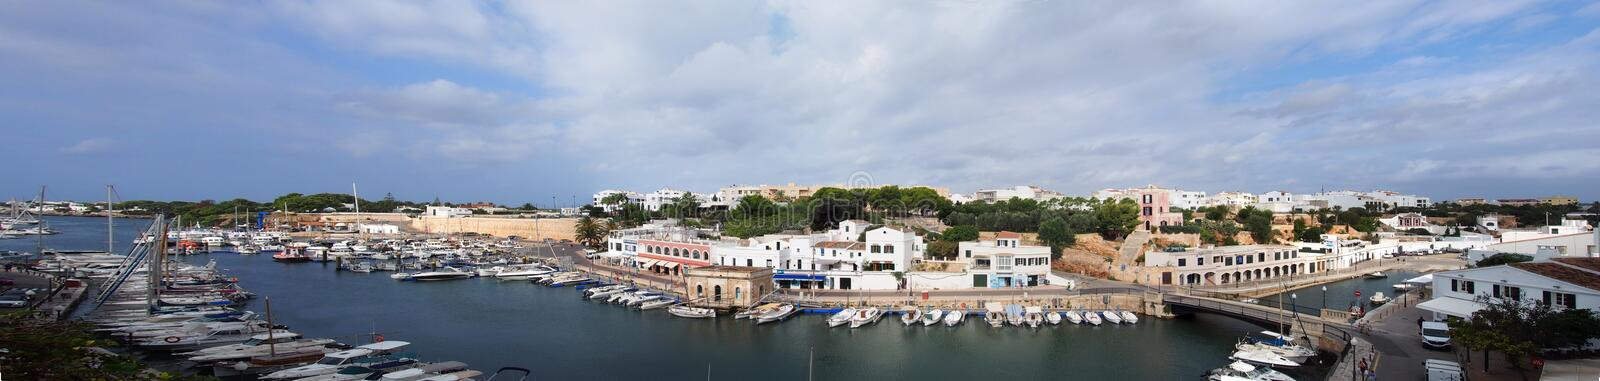 A wide panorama view of the town of ciutadella in menorca showing boats moored along the canal and surrounding buildings stock photo